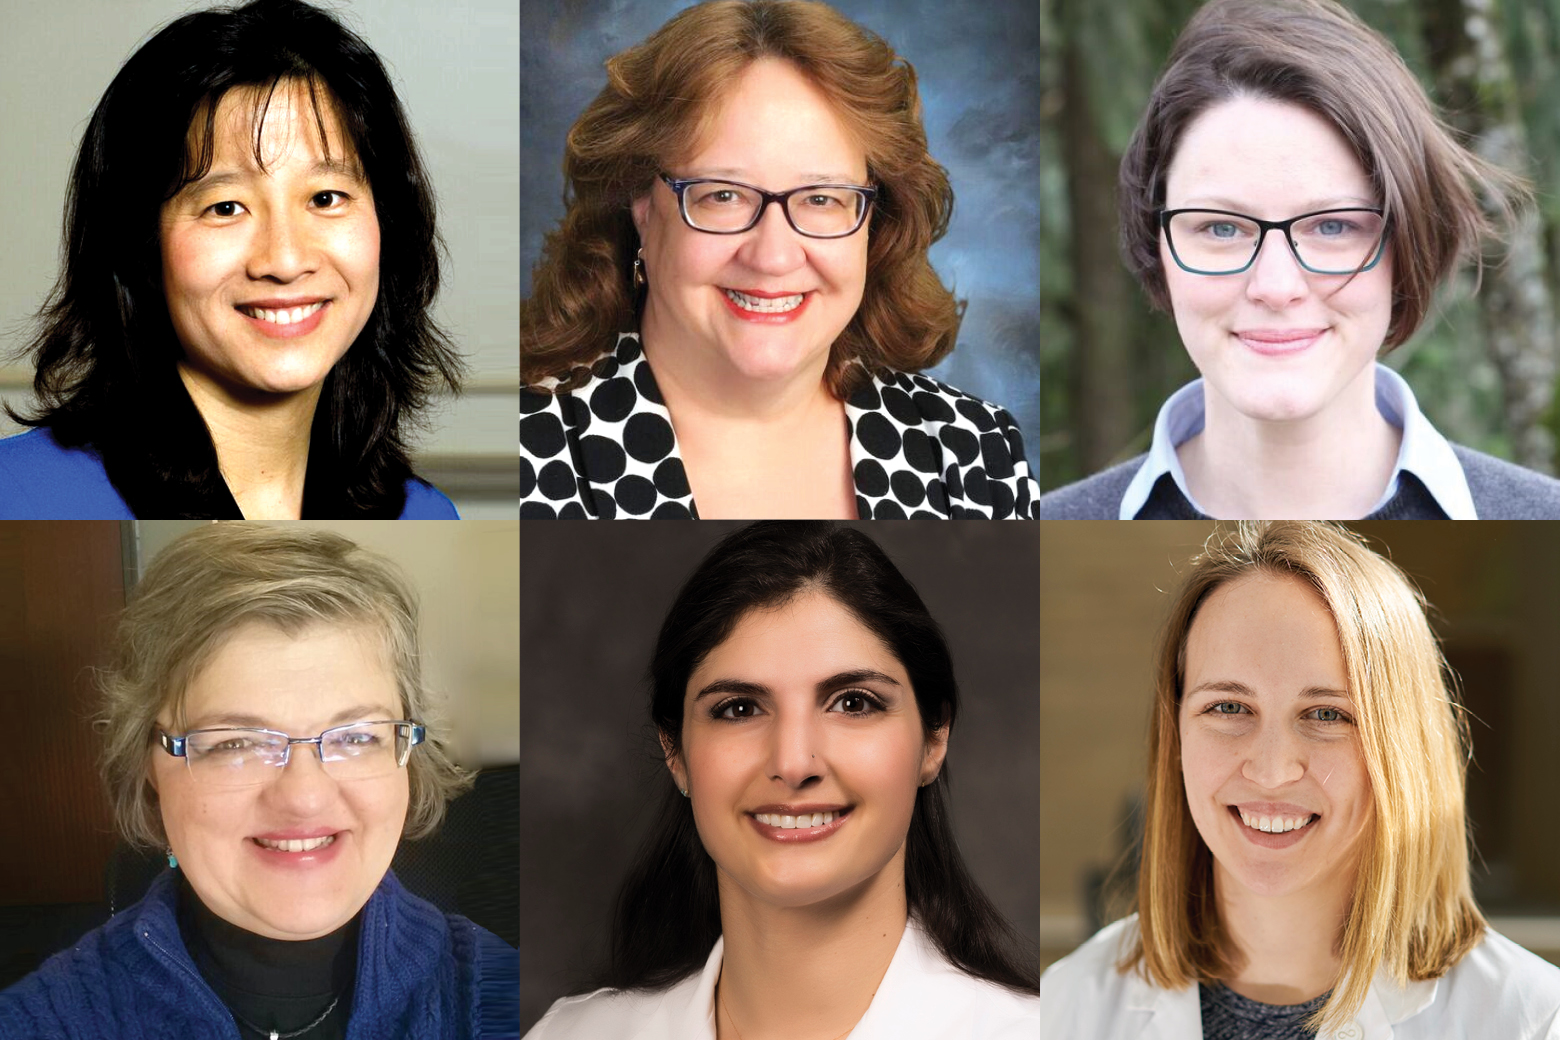 6 women awarded for research on gender bias in medical training   American Medical Association